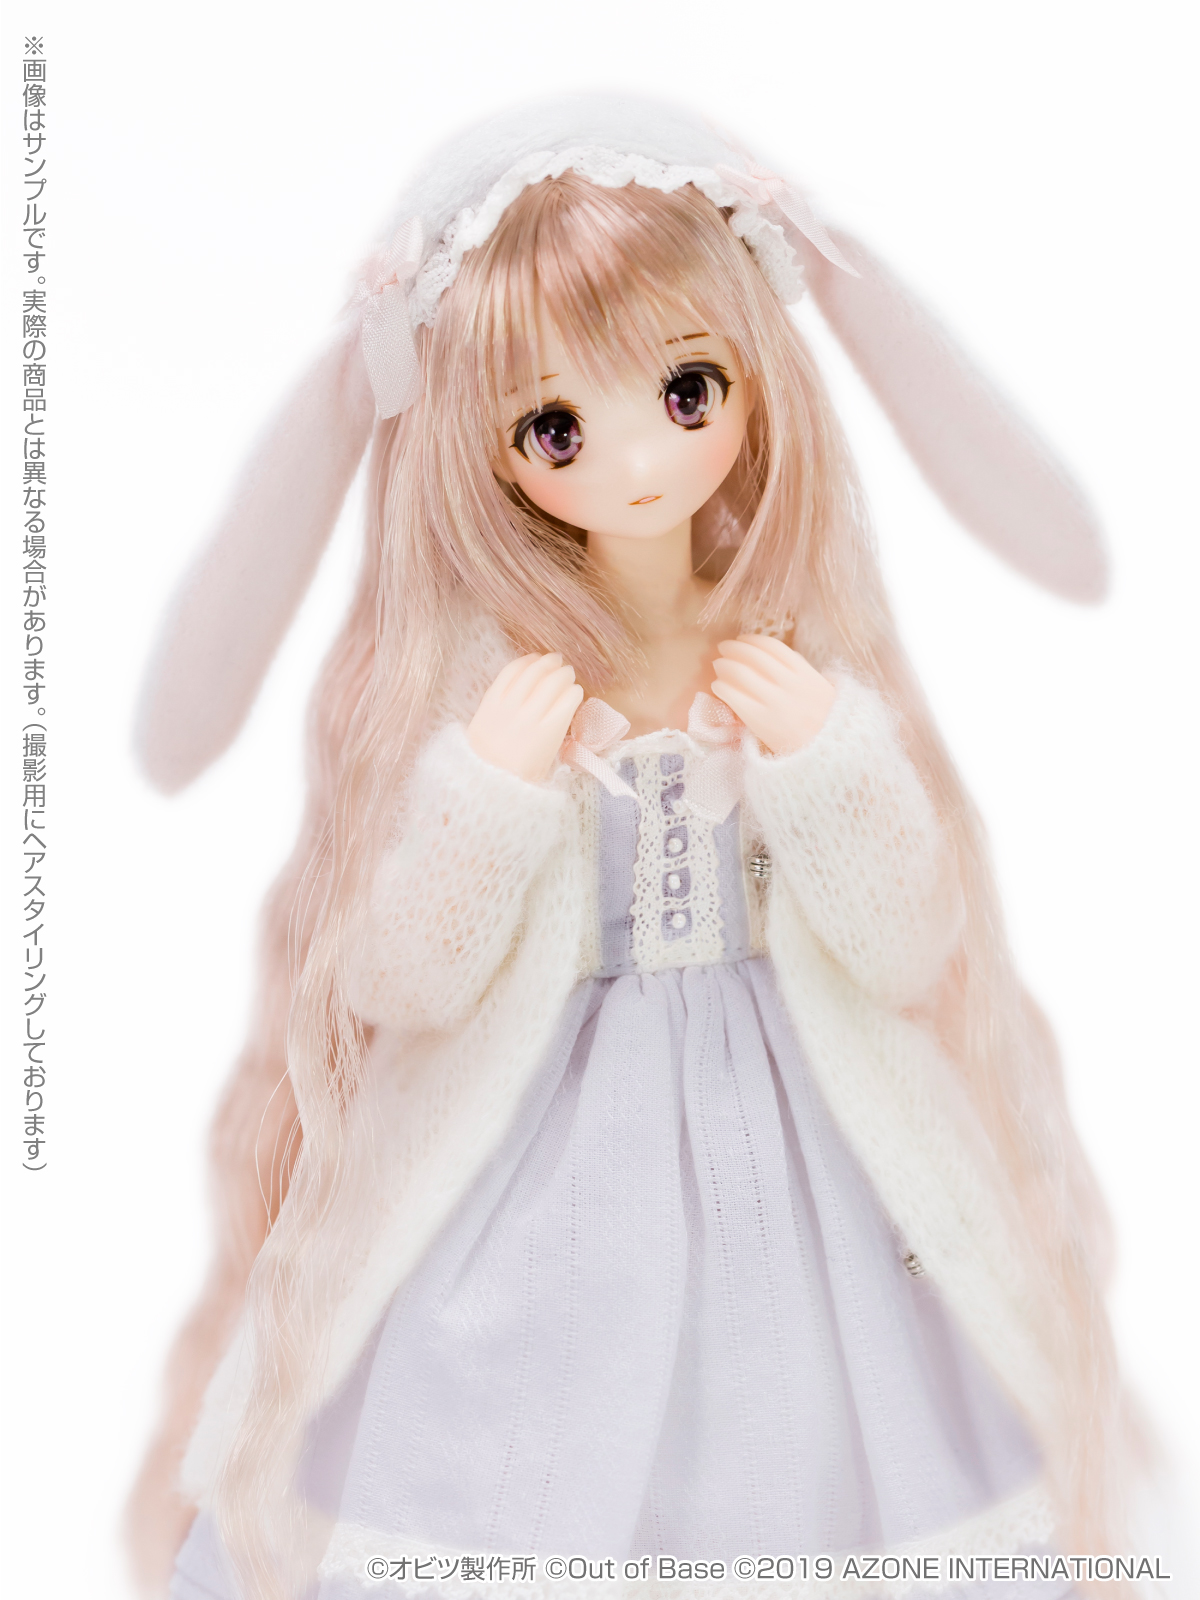 [Azone] Marshmallow Rabbit - Owase School Uniform Project Yuri Uemura - Obitsu exhibition holding commemorative model Aod01917